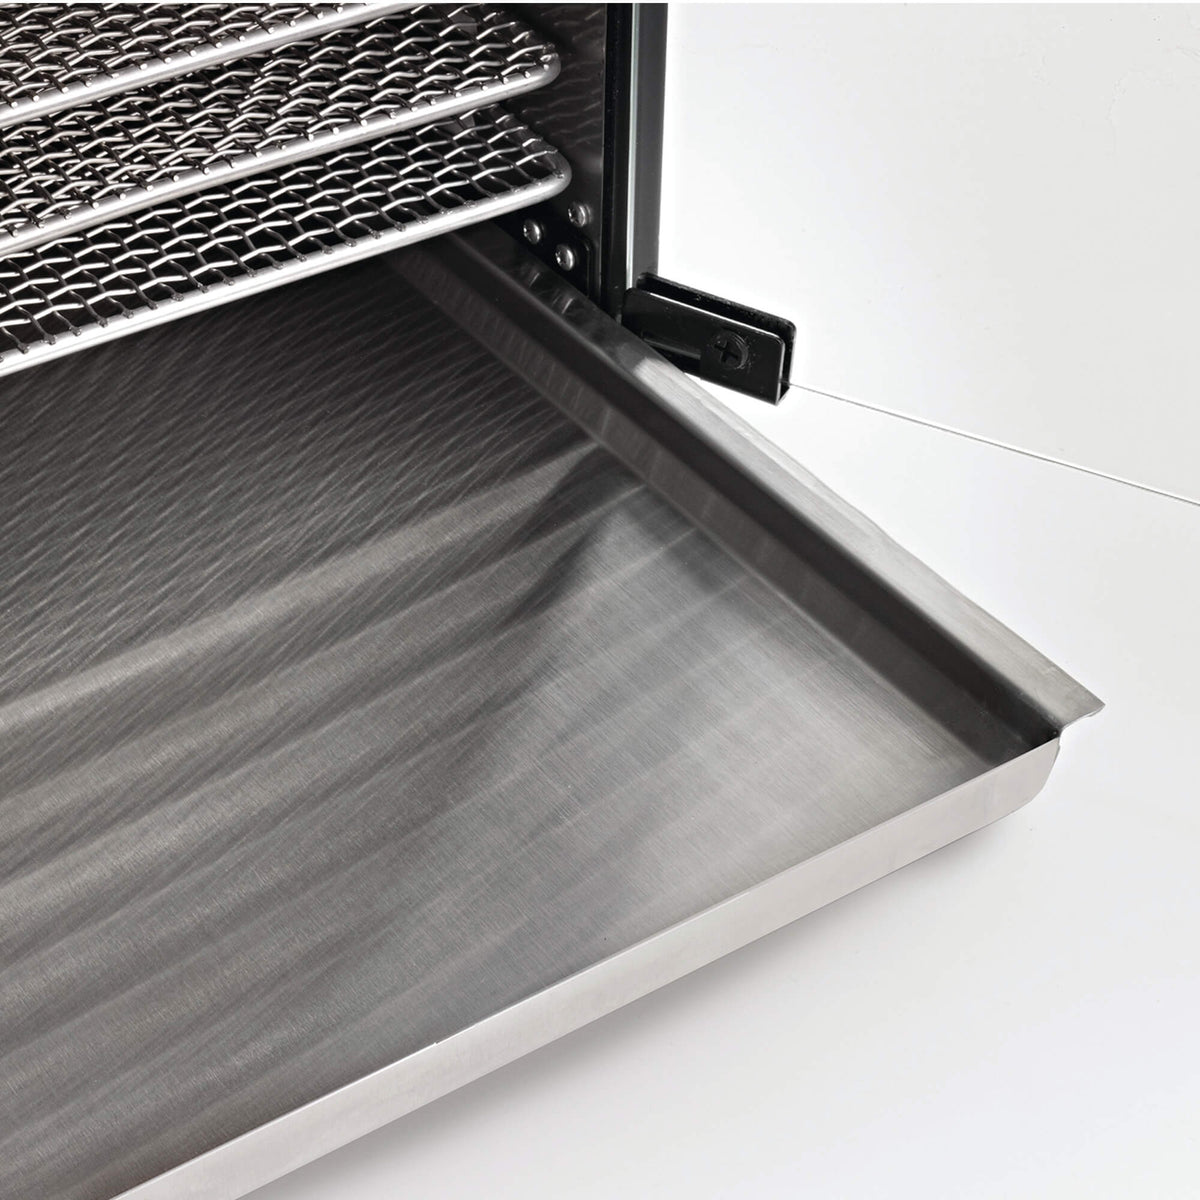 Excalibur EXC10EL 10 tray stainless steel digital dehydrator drip tray.